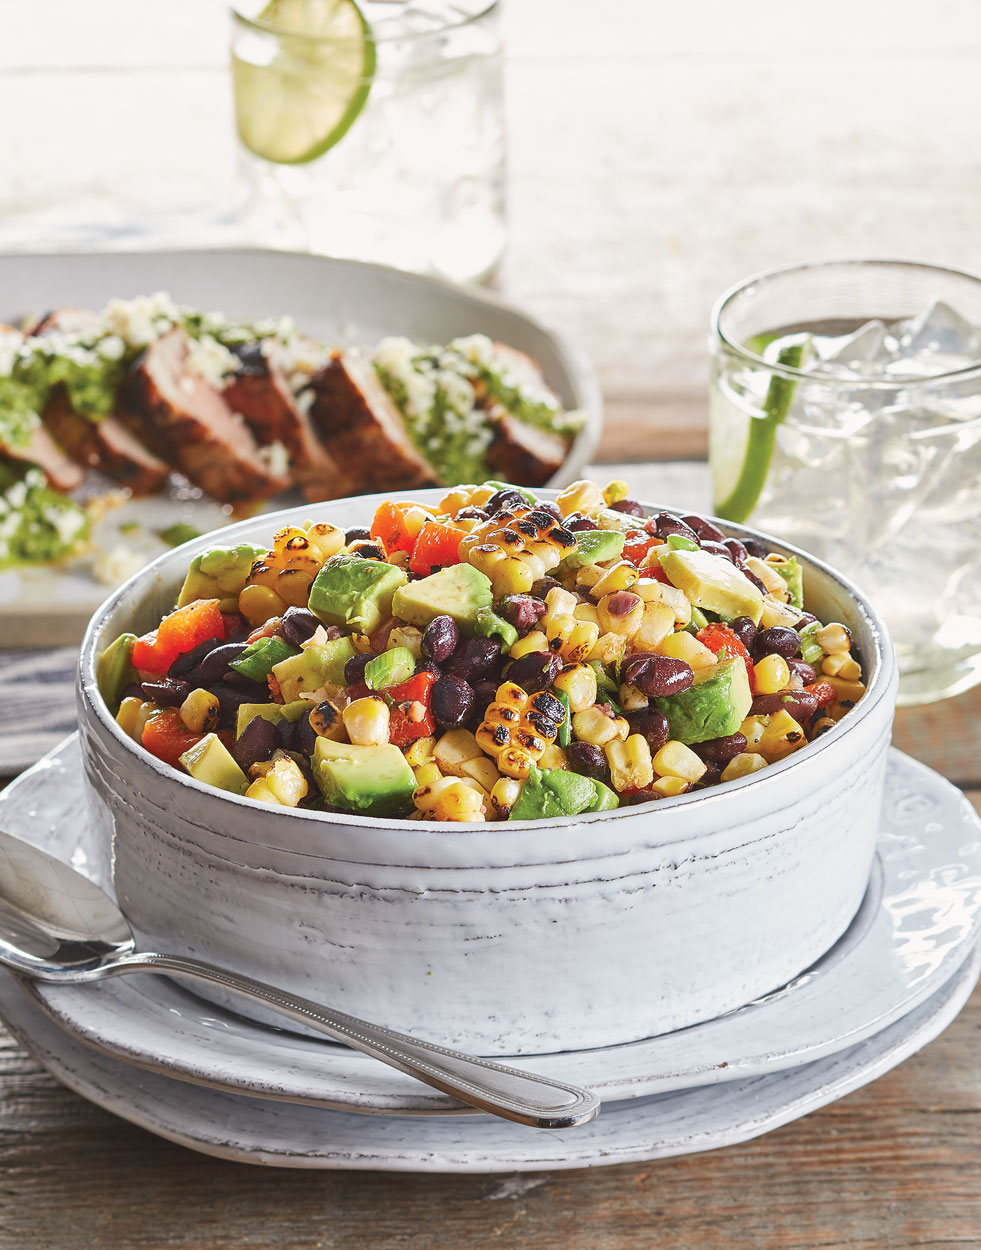 Charred Corn & Black Bean Salad with Red Bell Pepper and Avocado